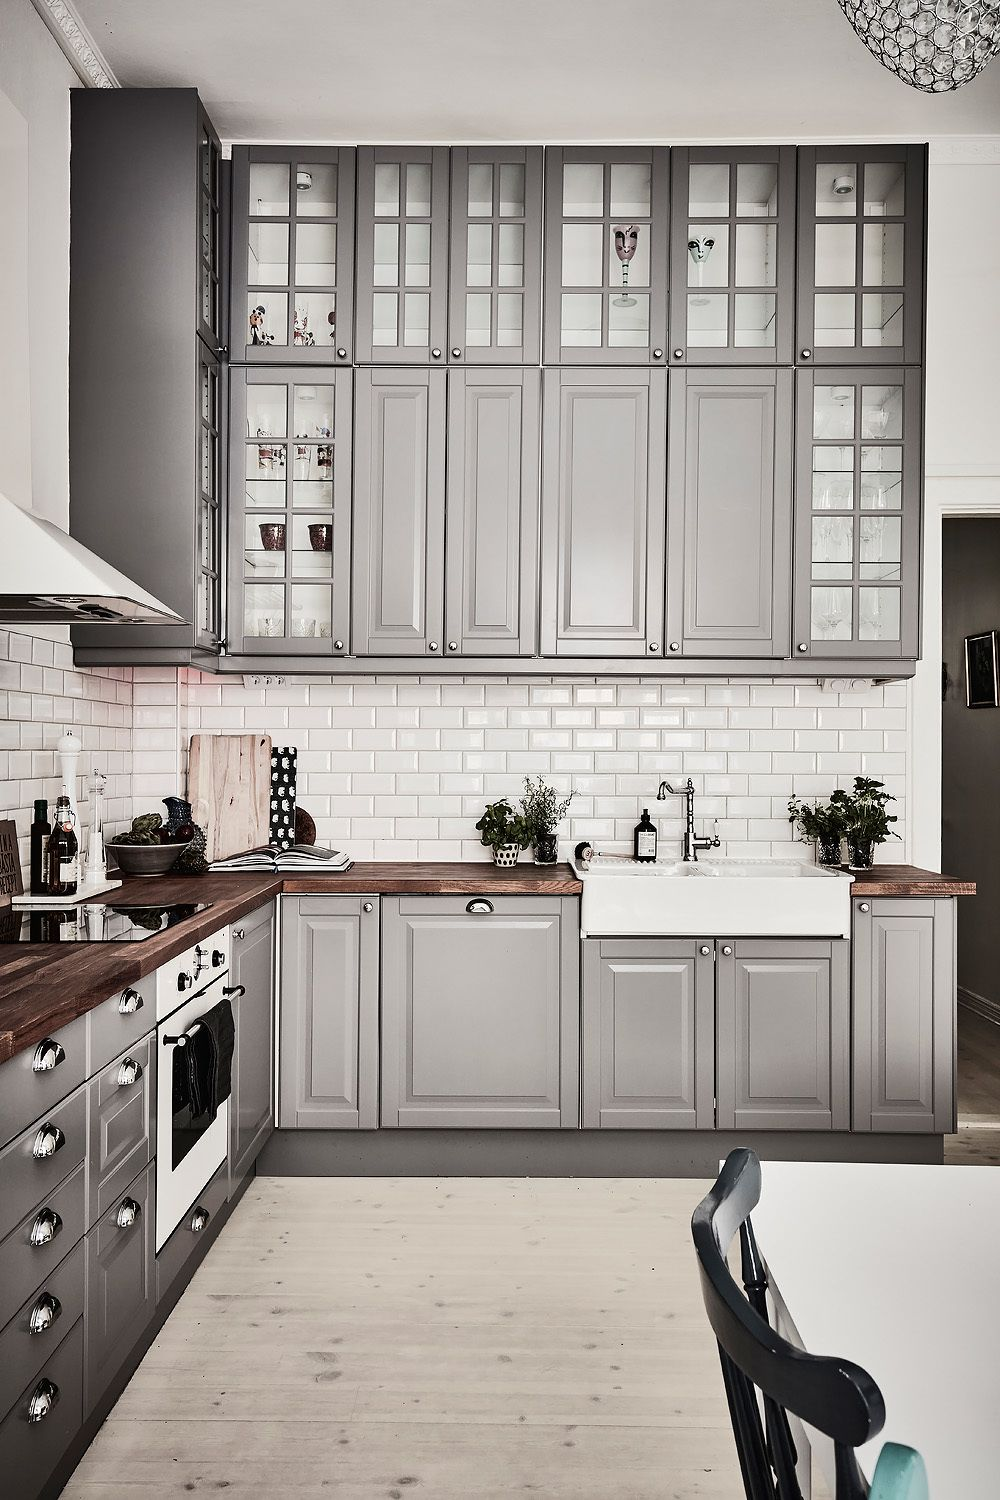 Inspiring Kitchens You Wont Believe Are IKEA Decorating Tips - Light grey kitchen cabinets dark floor